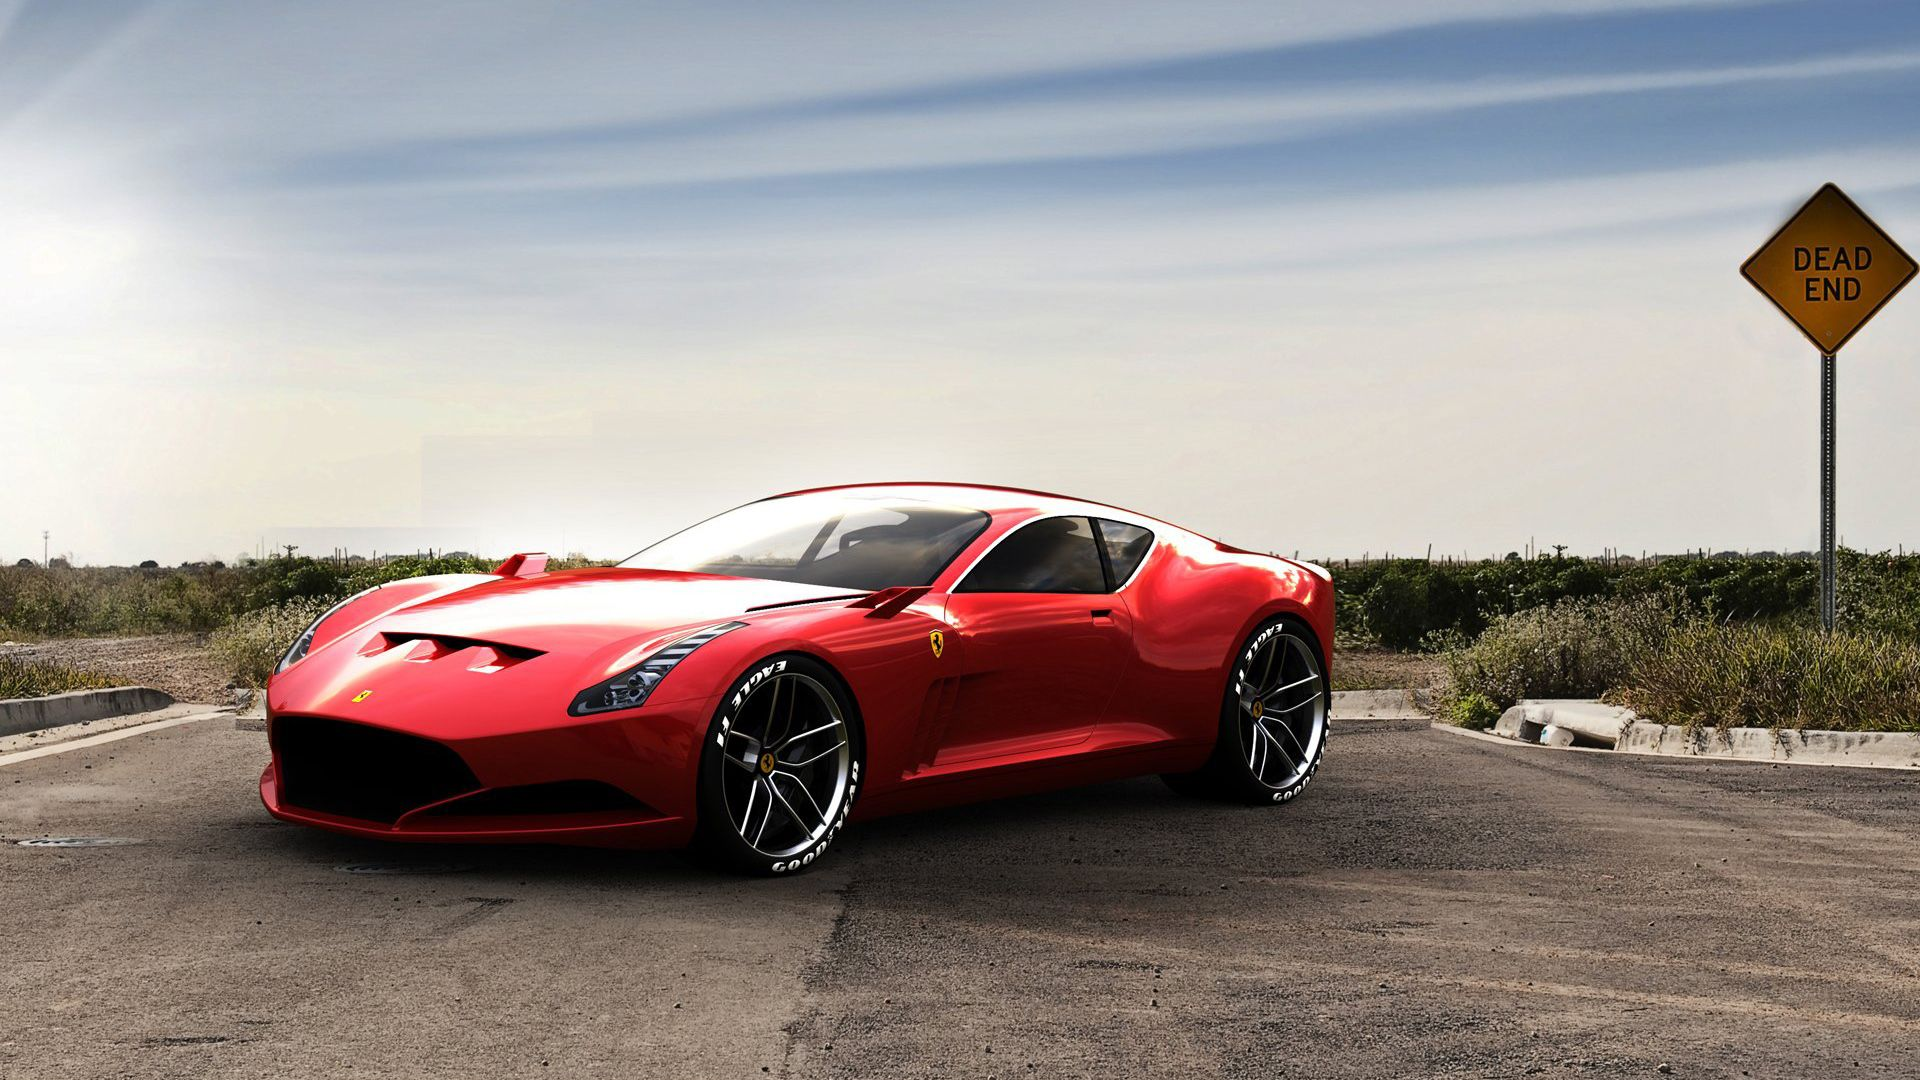 car wallpapers hdferrari sports car wallpapers hd for desktop download 1920x1080